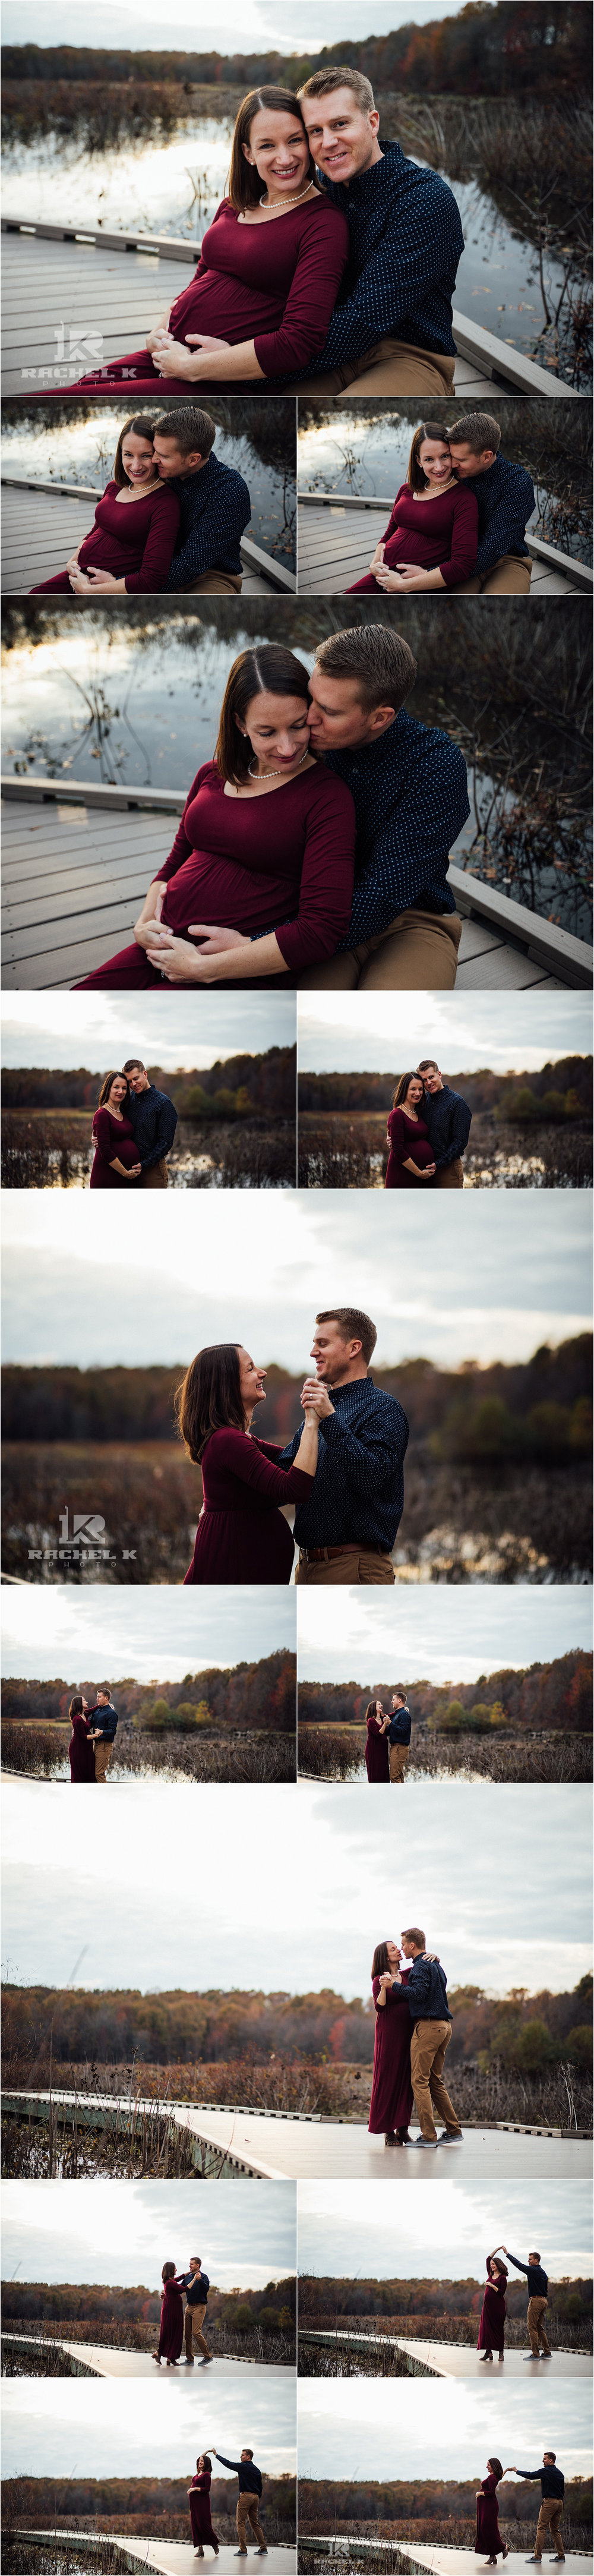 Fairfax Virginia maternity session at Huntley Meadows by Rachel K Photo